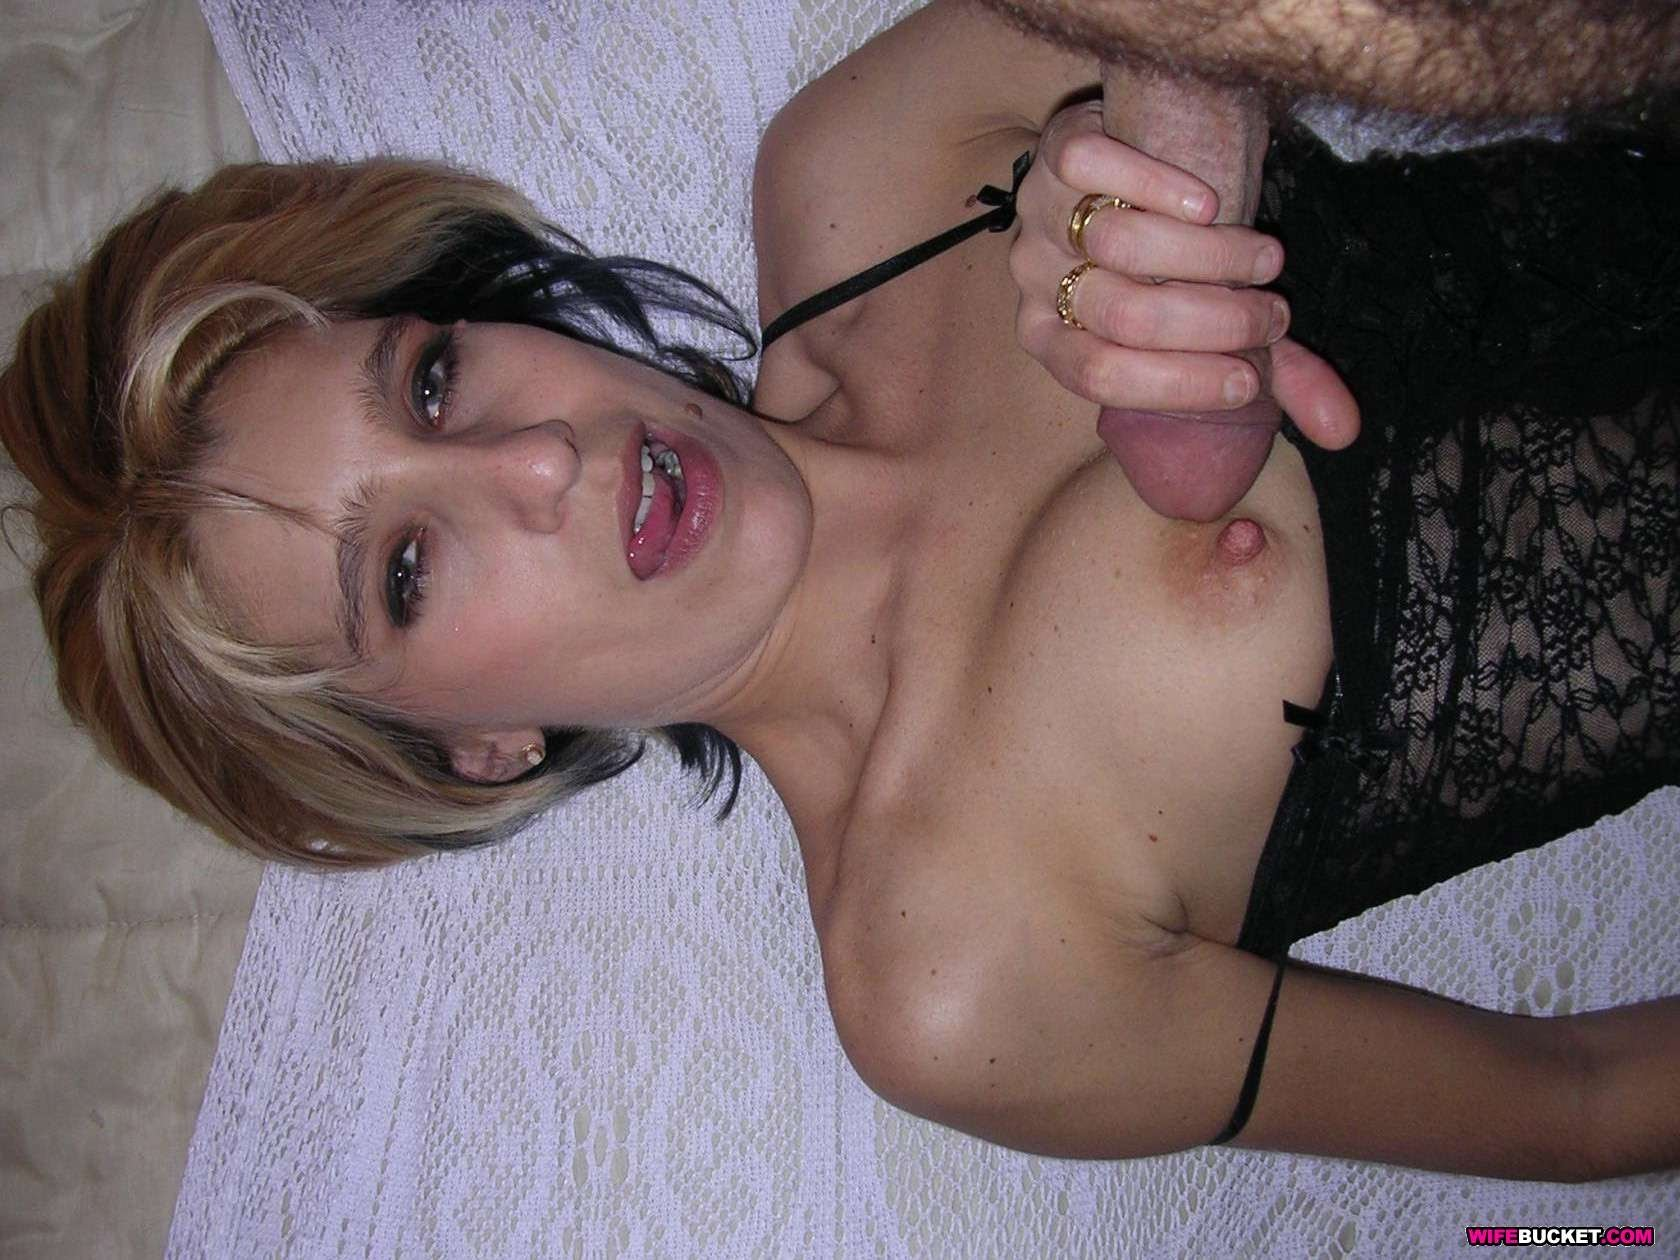 Free live adult web chat Porn online husband wife and friend